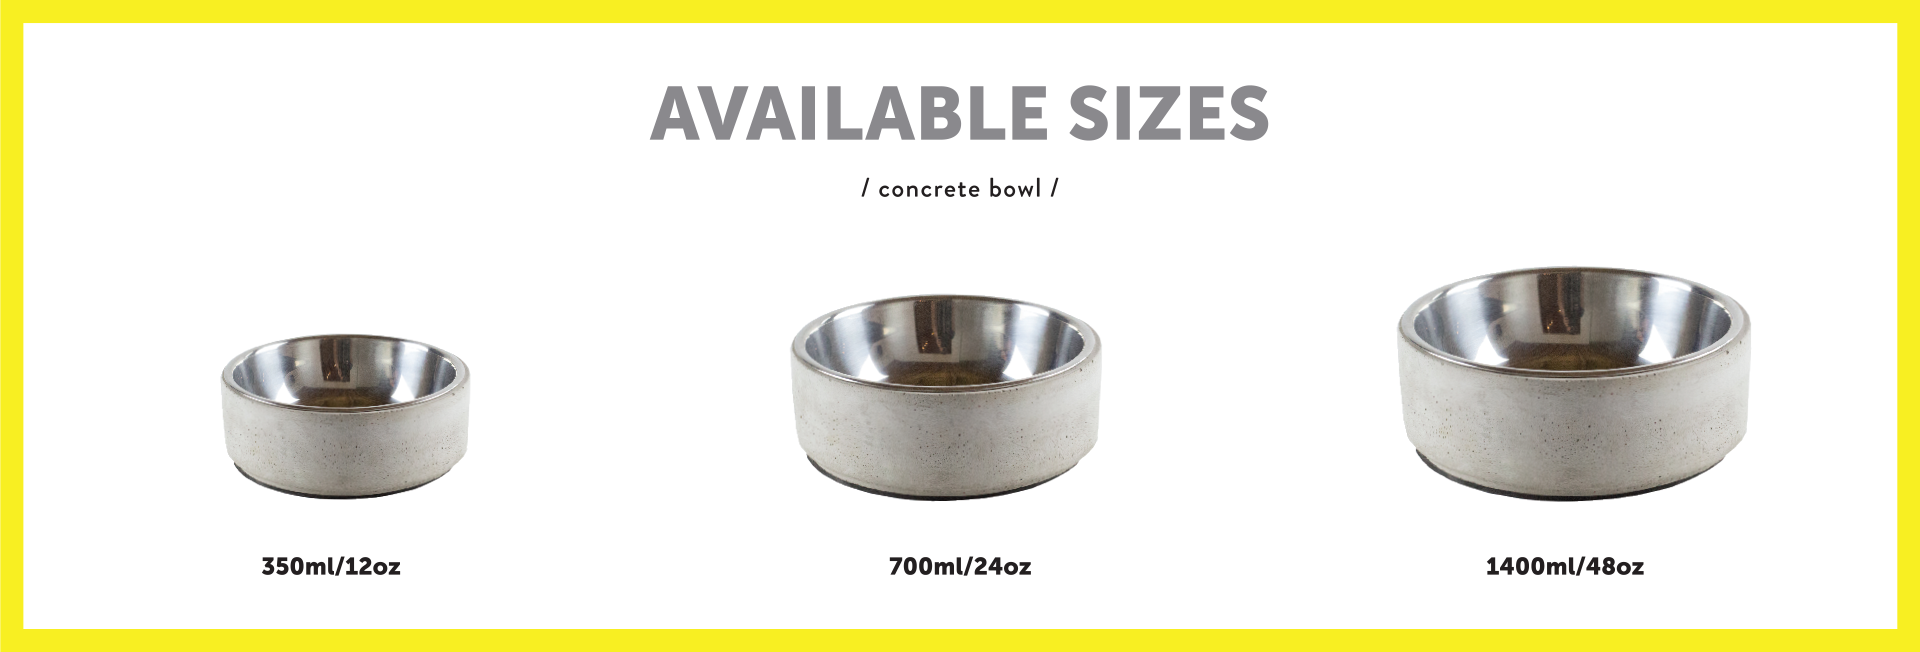 dimensions-concrete-bowl-for-dogs-english